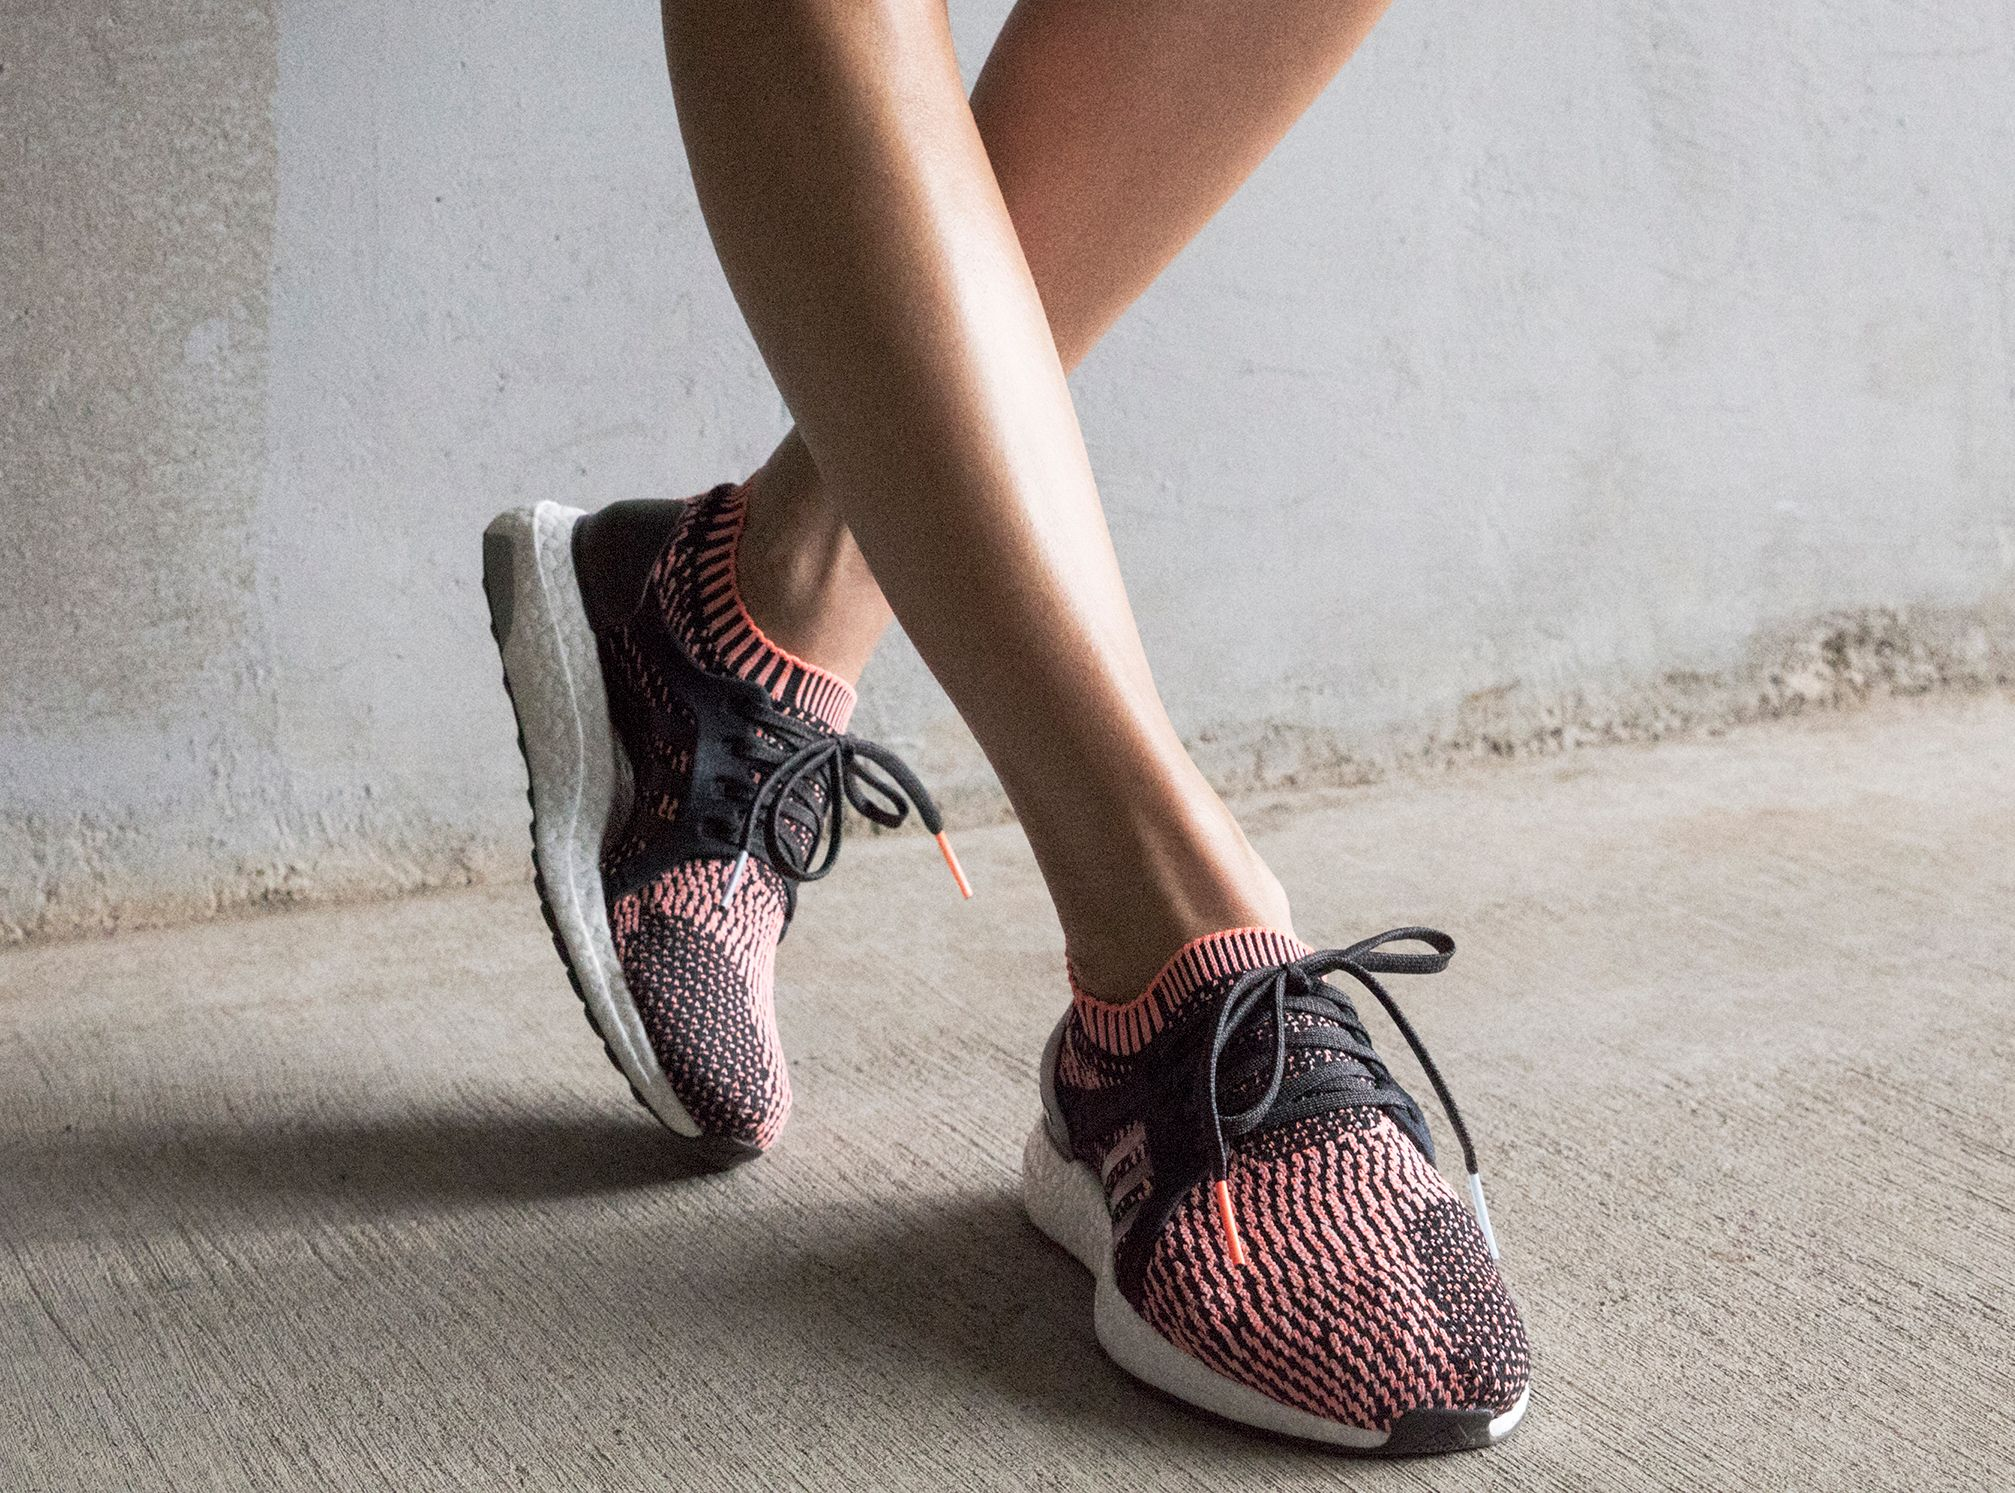 First Look: The New Adidas Ultra Boost X, a Running Shoe